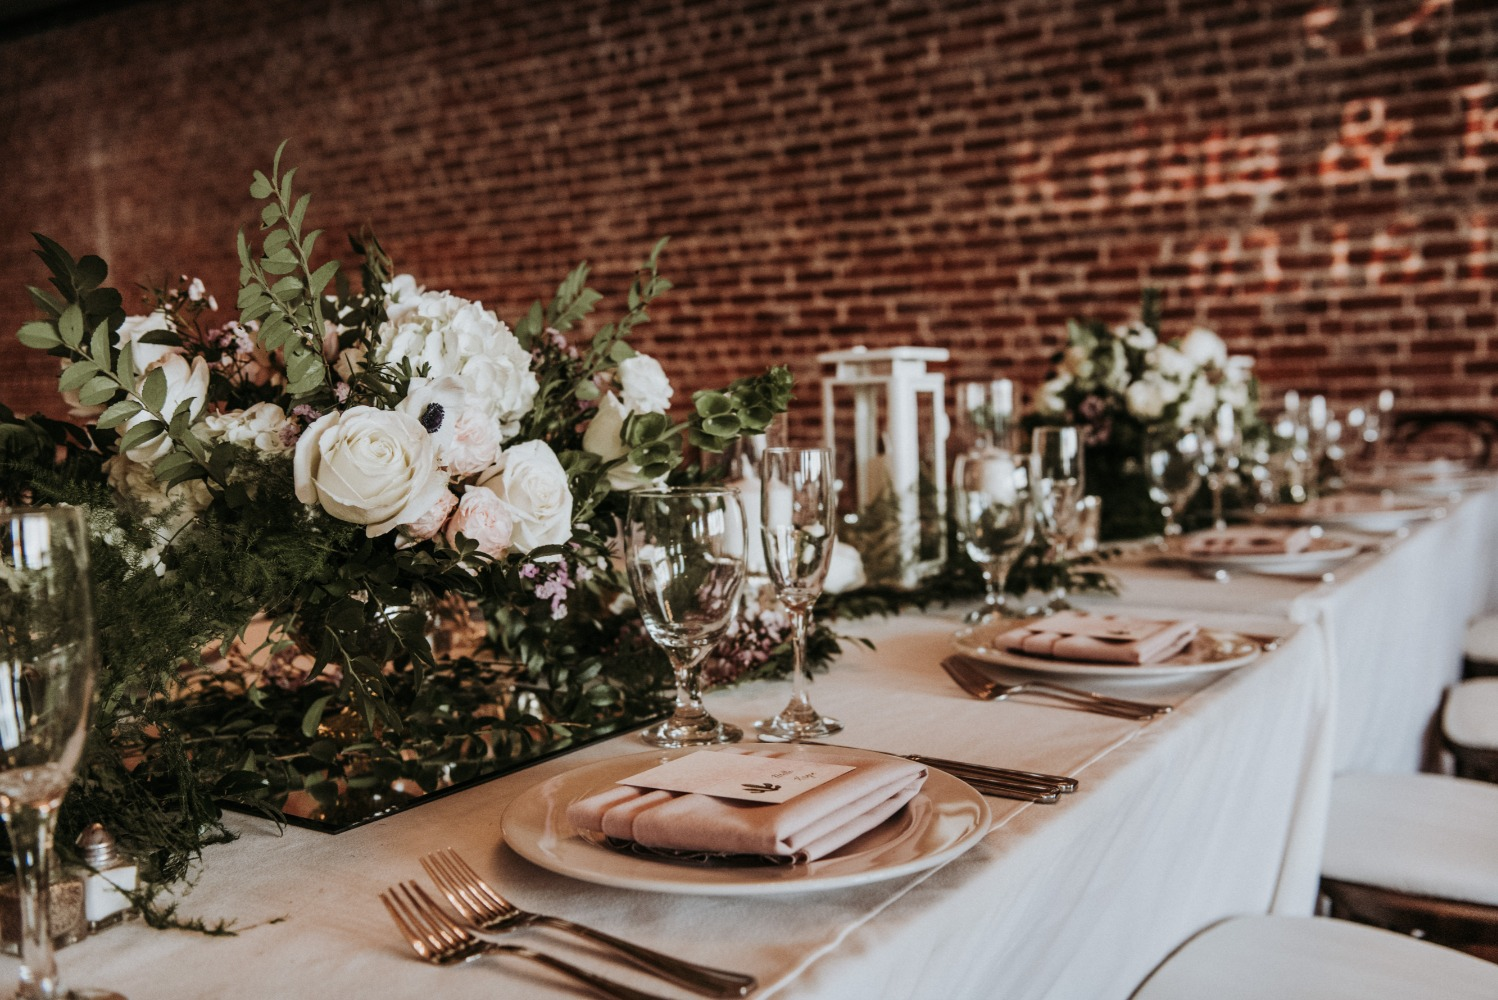 wedding table decor in white and soft blush